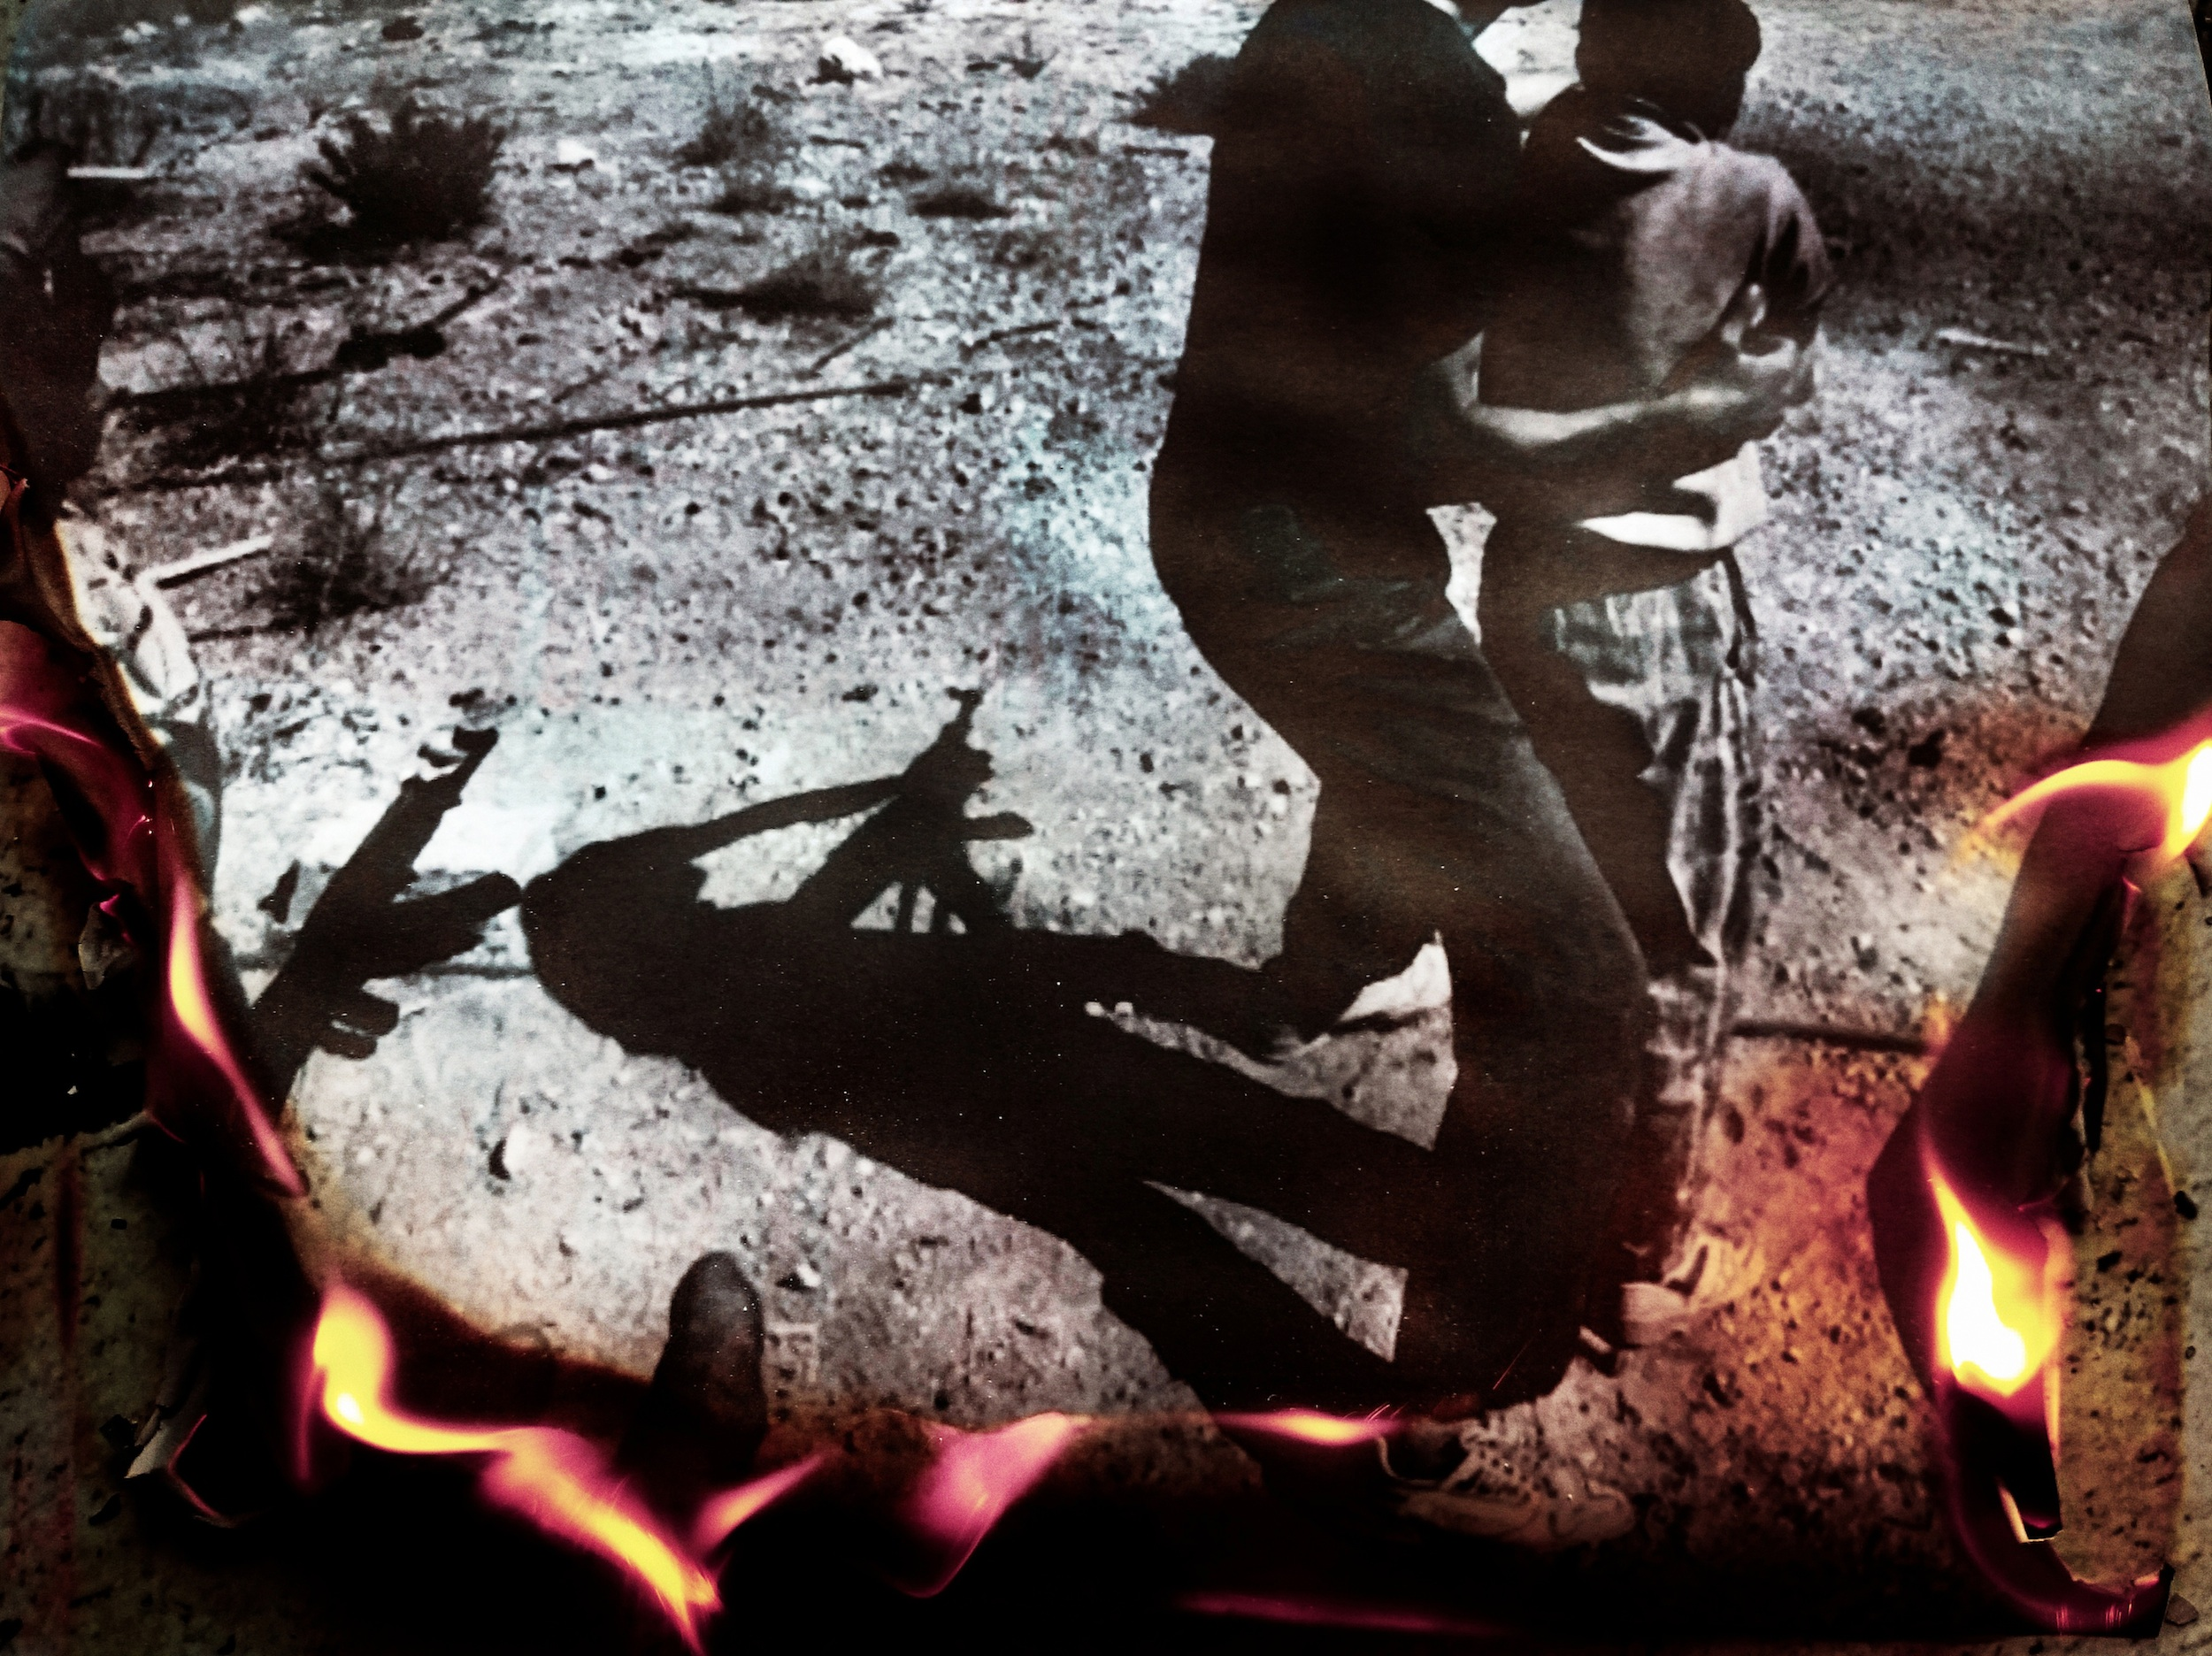 Beirut image on fire II. The original burning image was published in the book War Children, Lebanon 1985-1992, page 51. Shooting practice at the Syrian Nationalist Party's Lion Cubs training camp in Mount Lebanon, 1989.